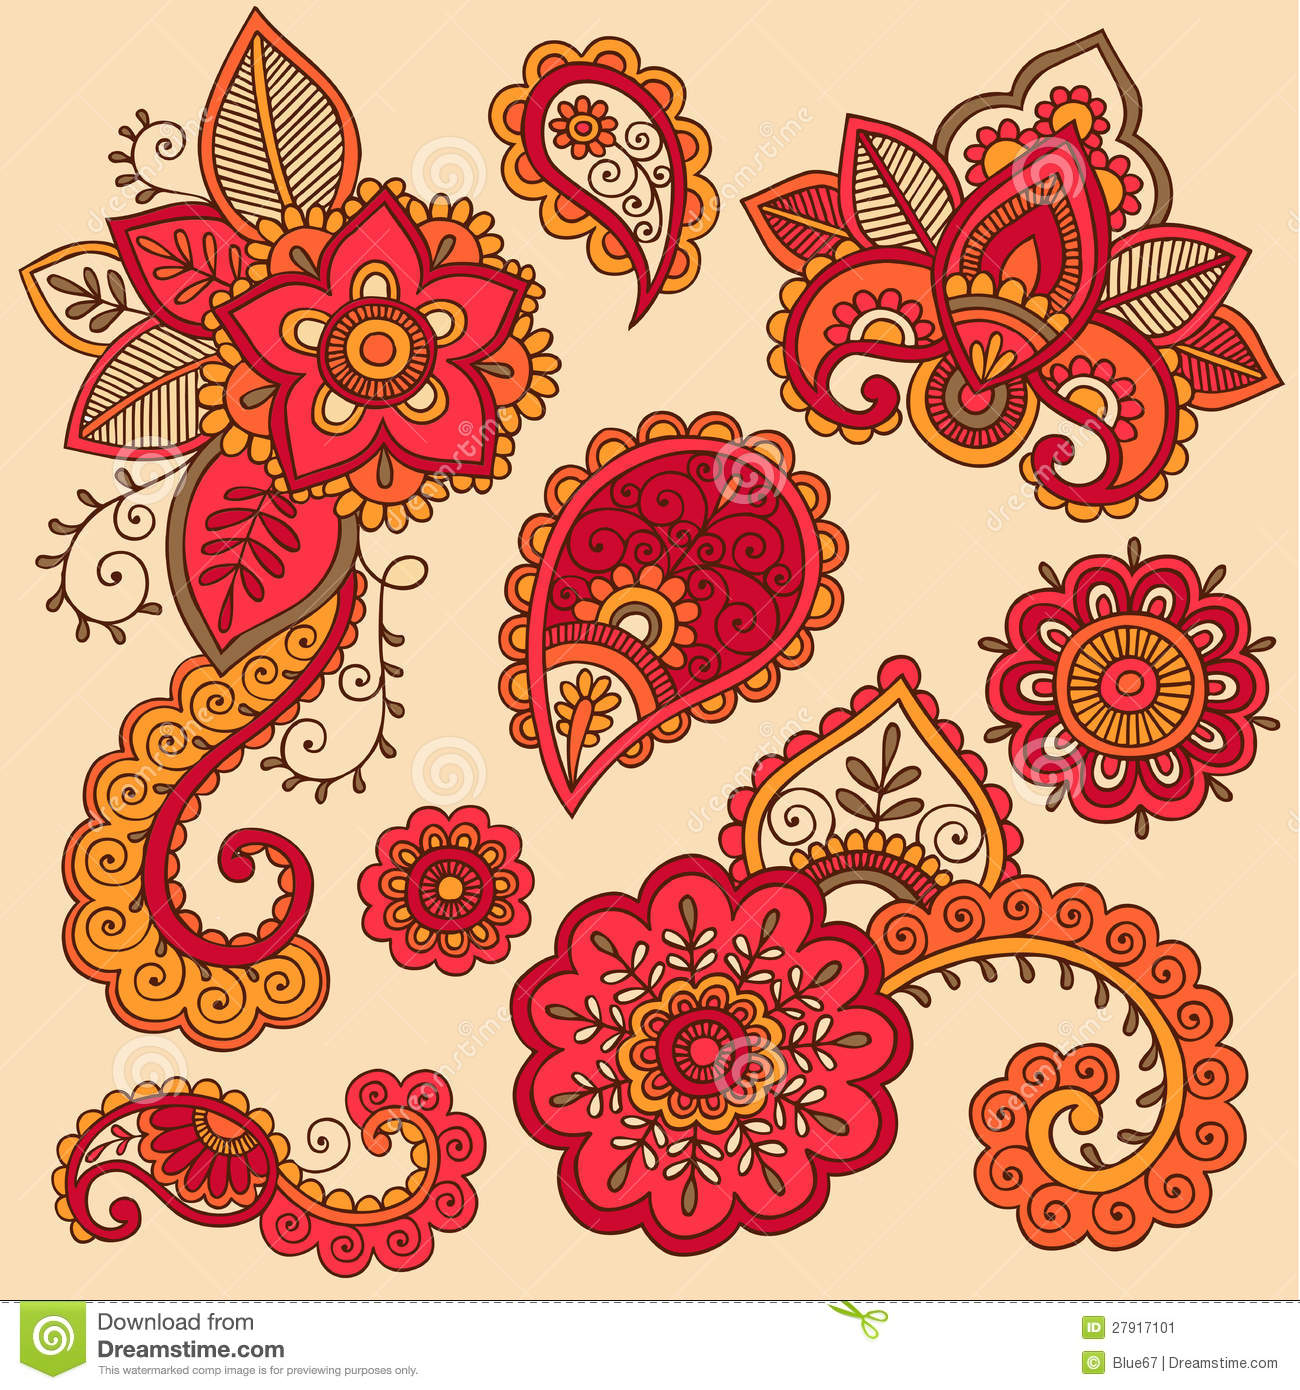 Pin Tattoo Vector Flower Wallpaper Flowers Wallpapers Picture To